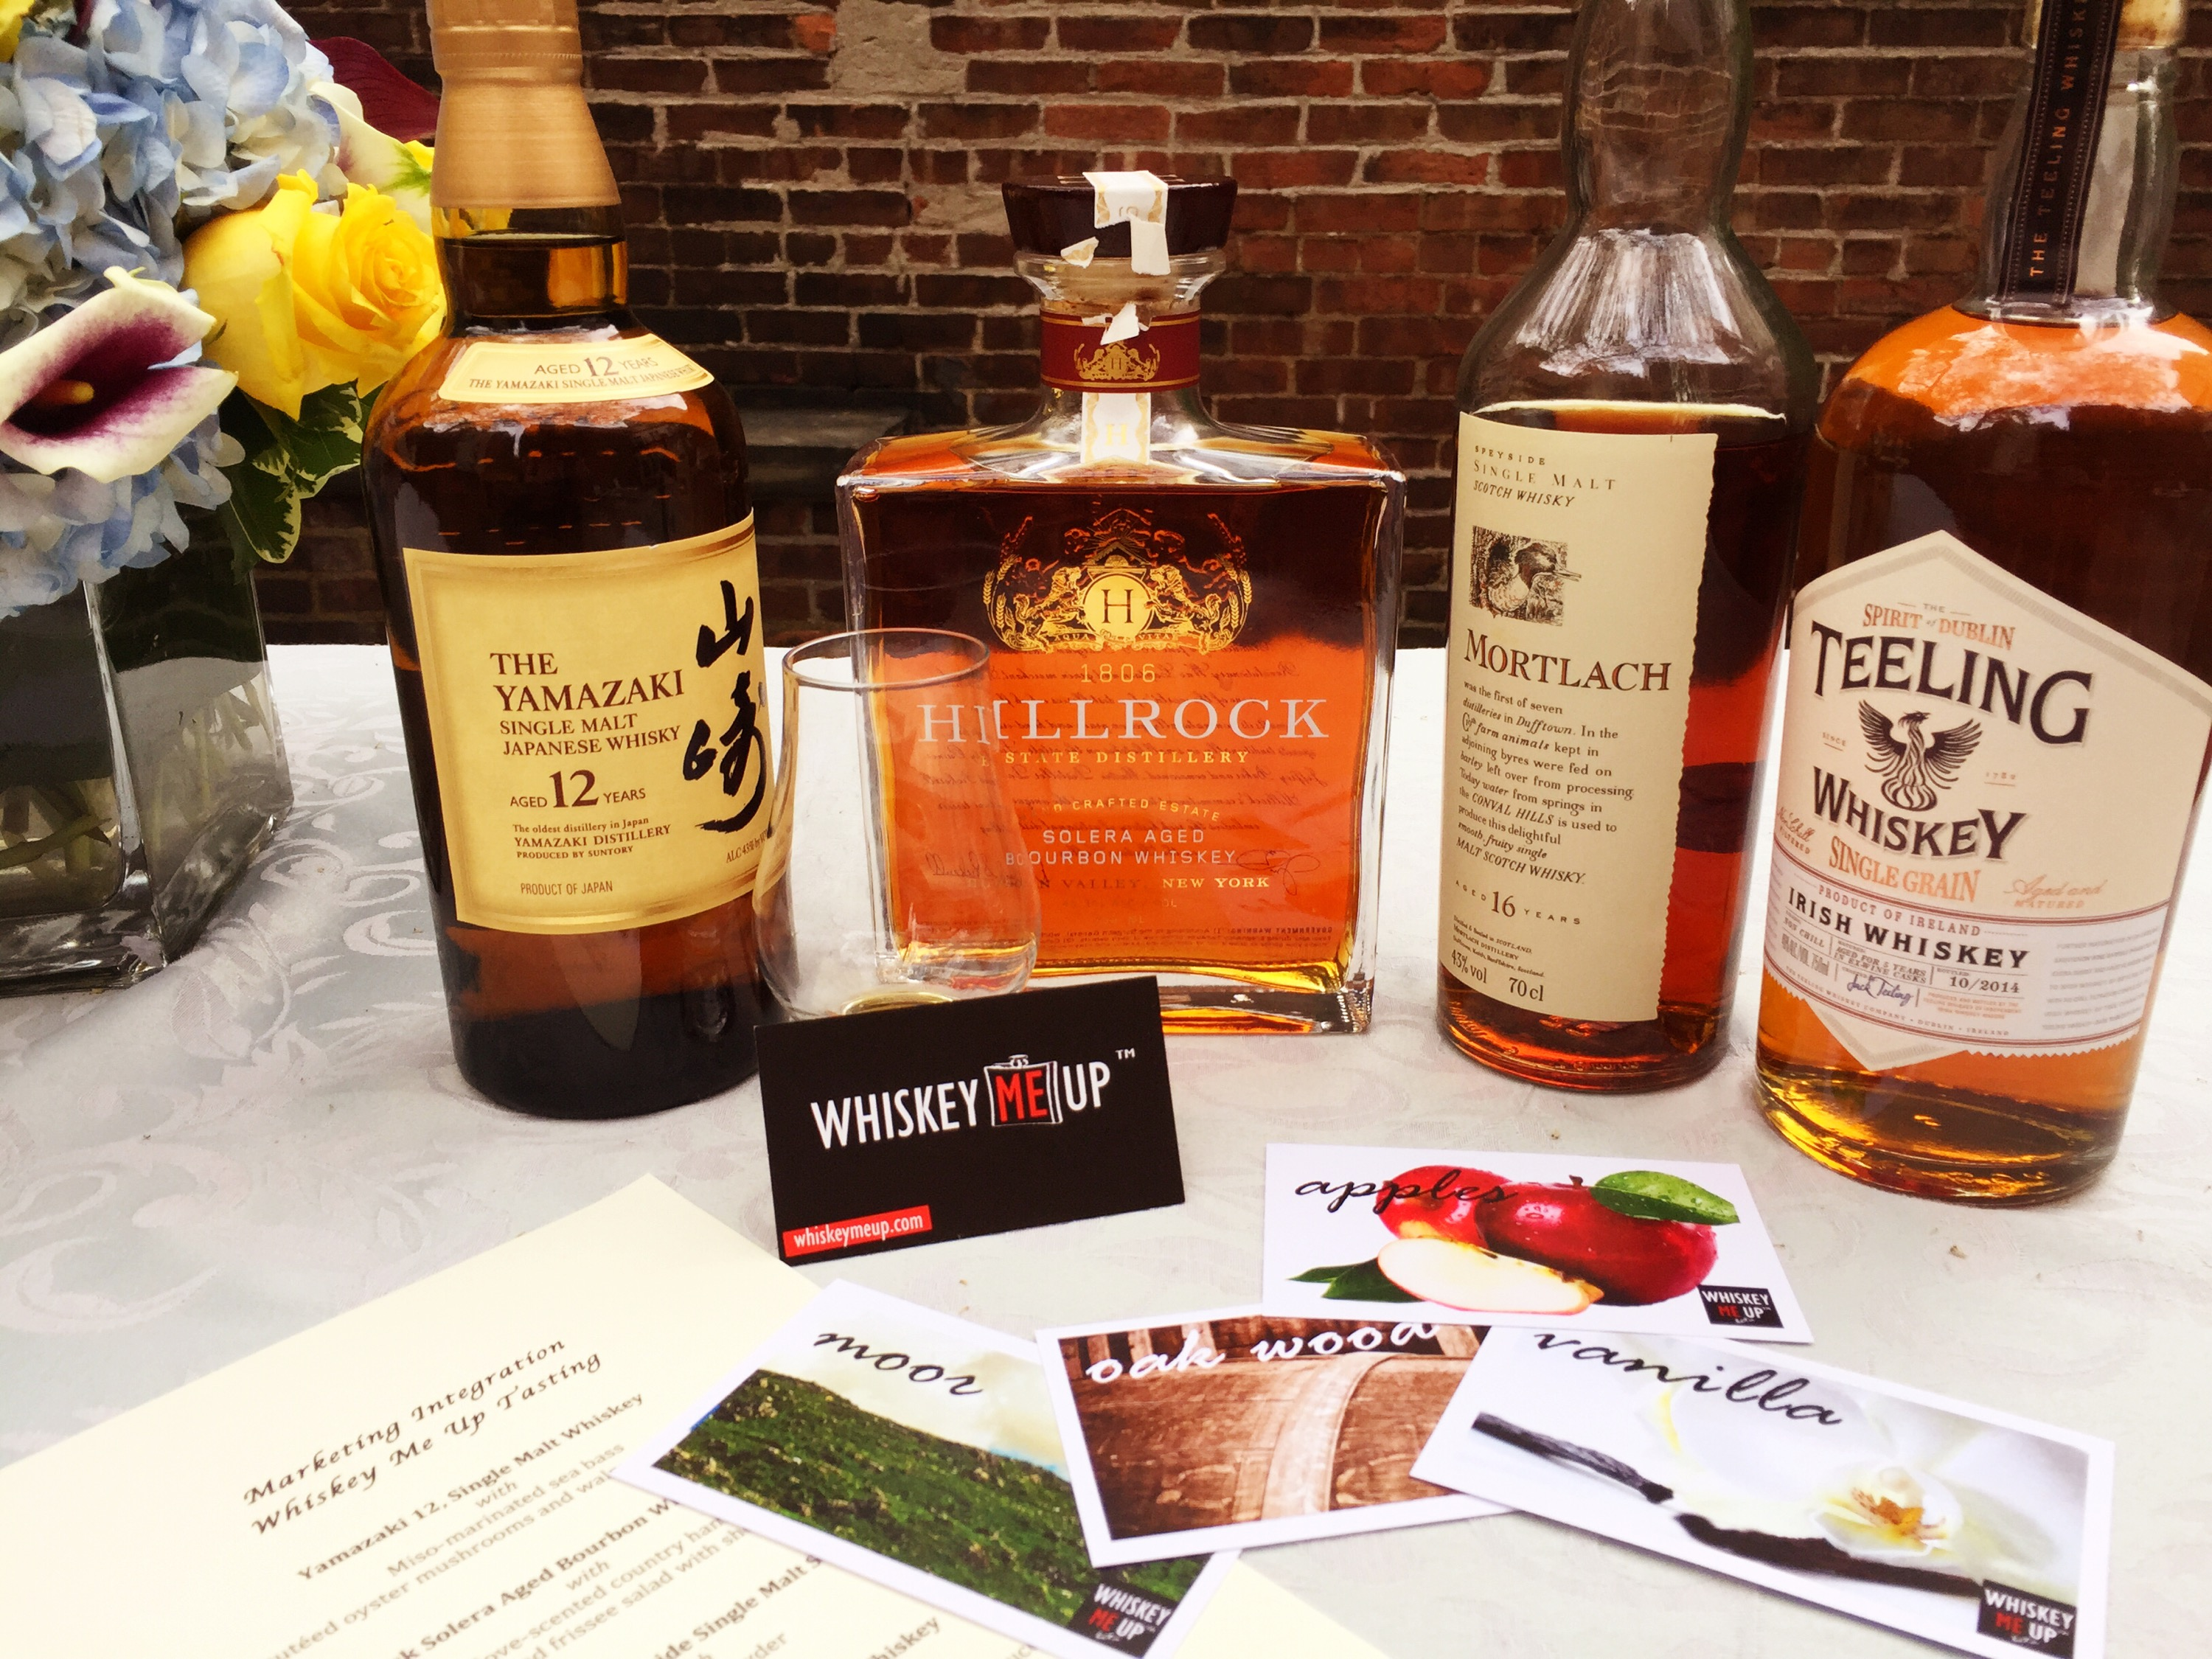 Private Whiskey Tasting (with Catered Food) [05.05.2015]